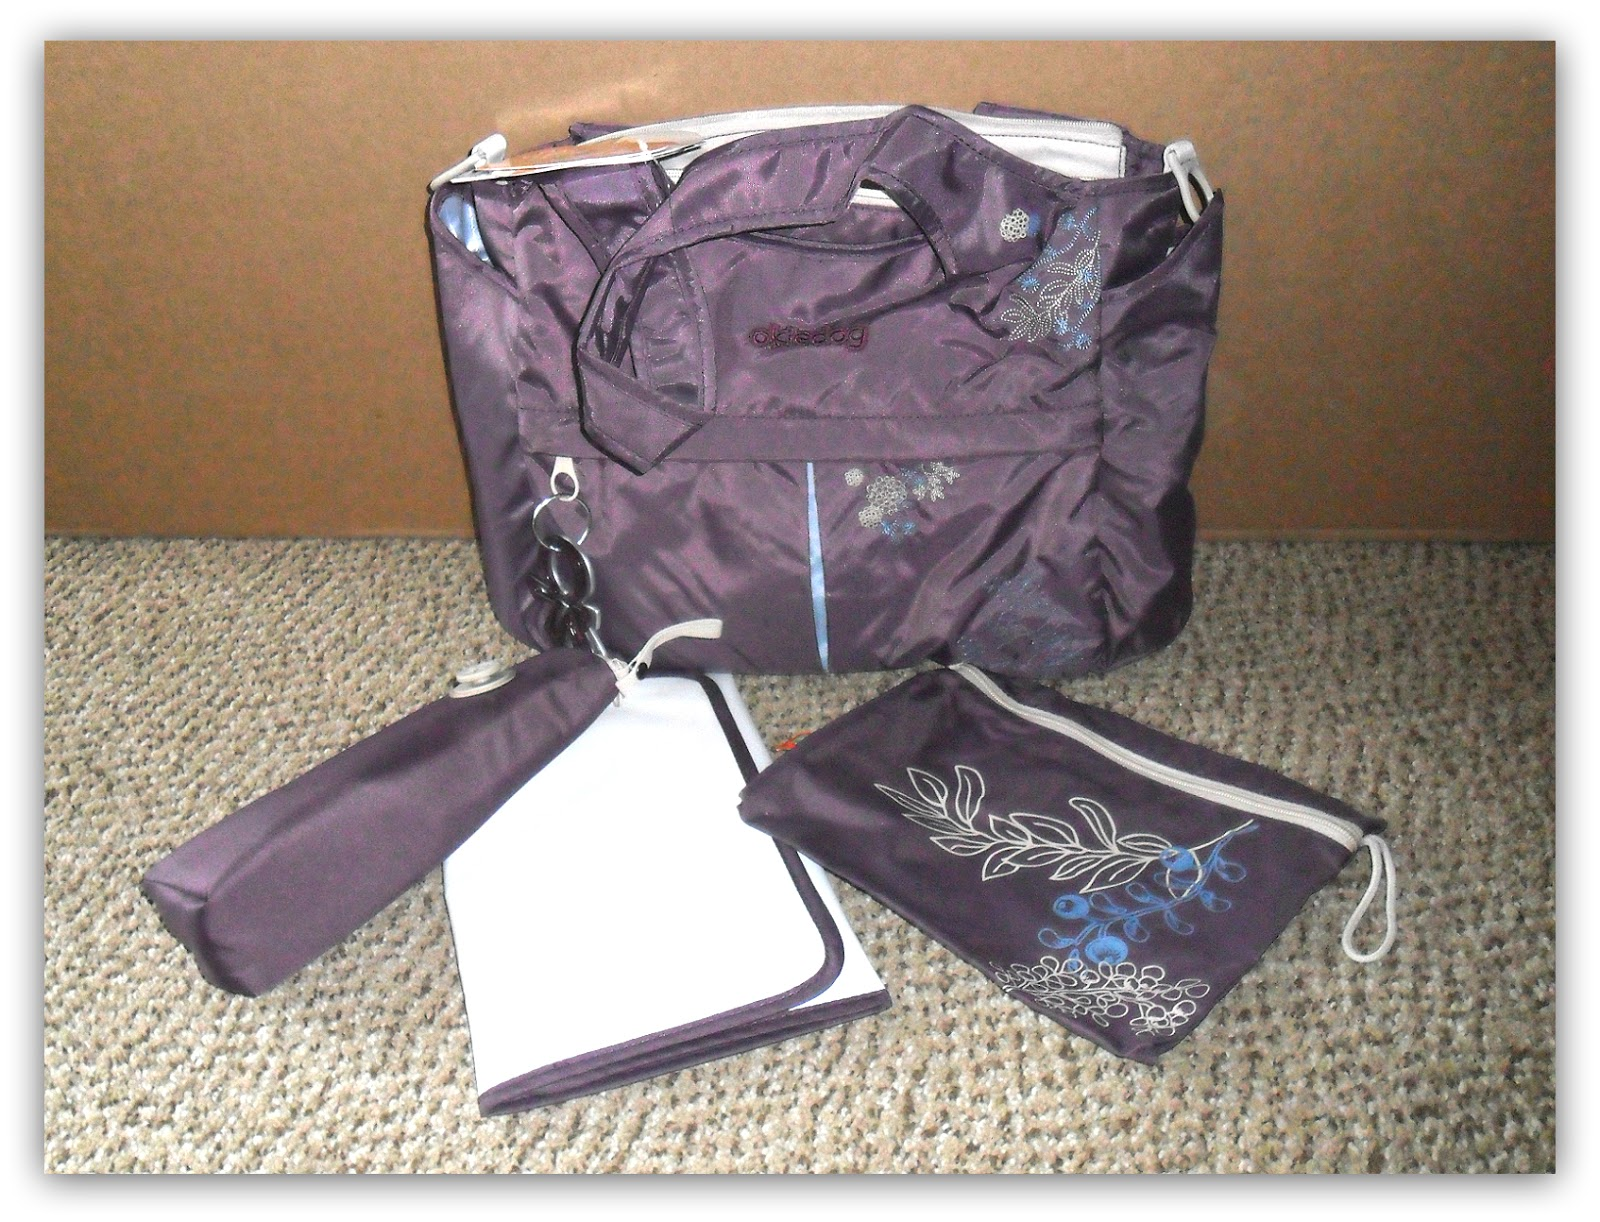 Okiedog and diaperbag diaries. Review